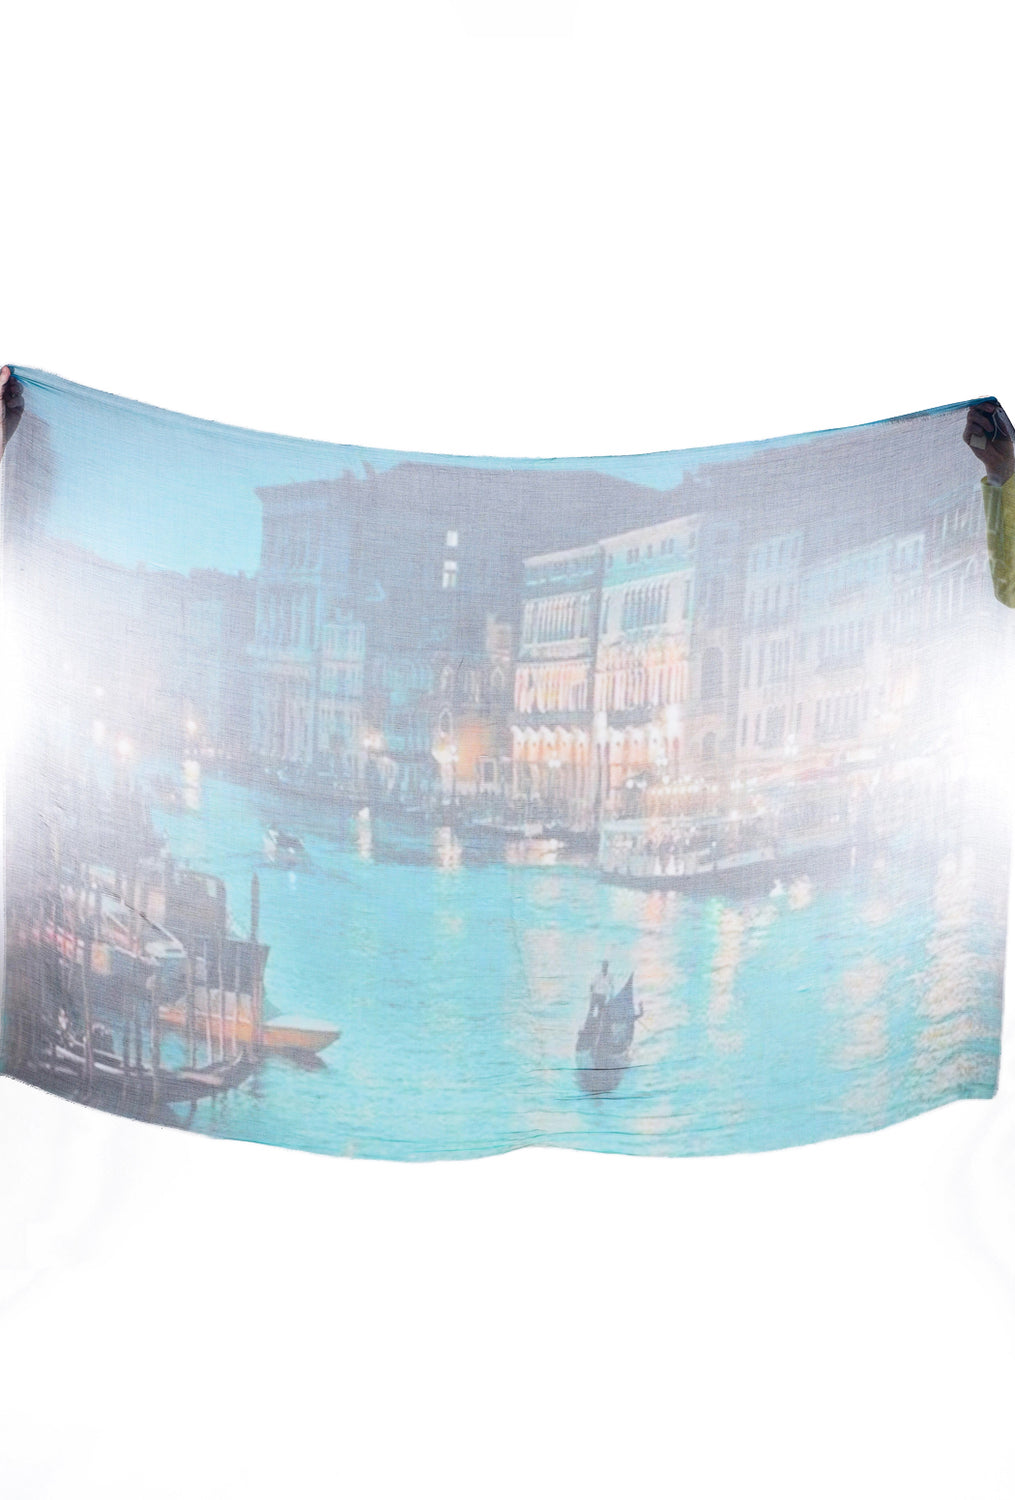 Blue Pacific Vintage Artisan Scarf, Venice Canal